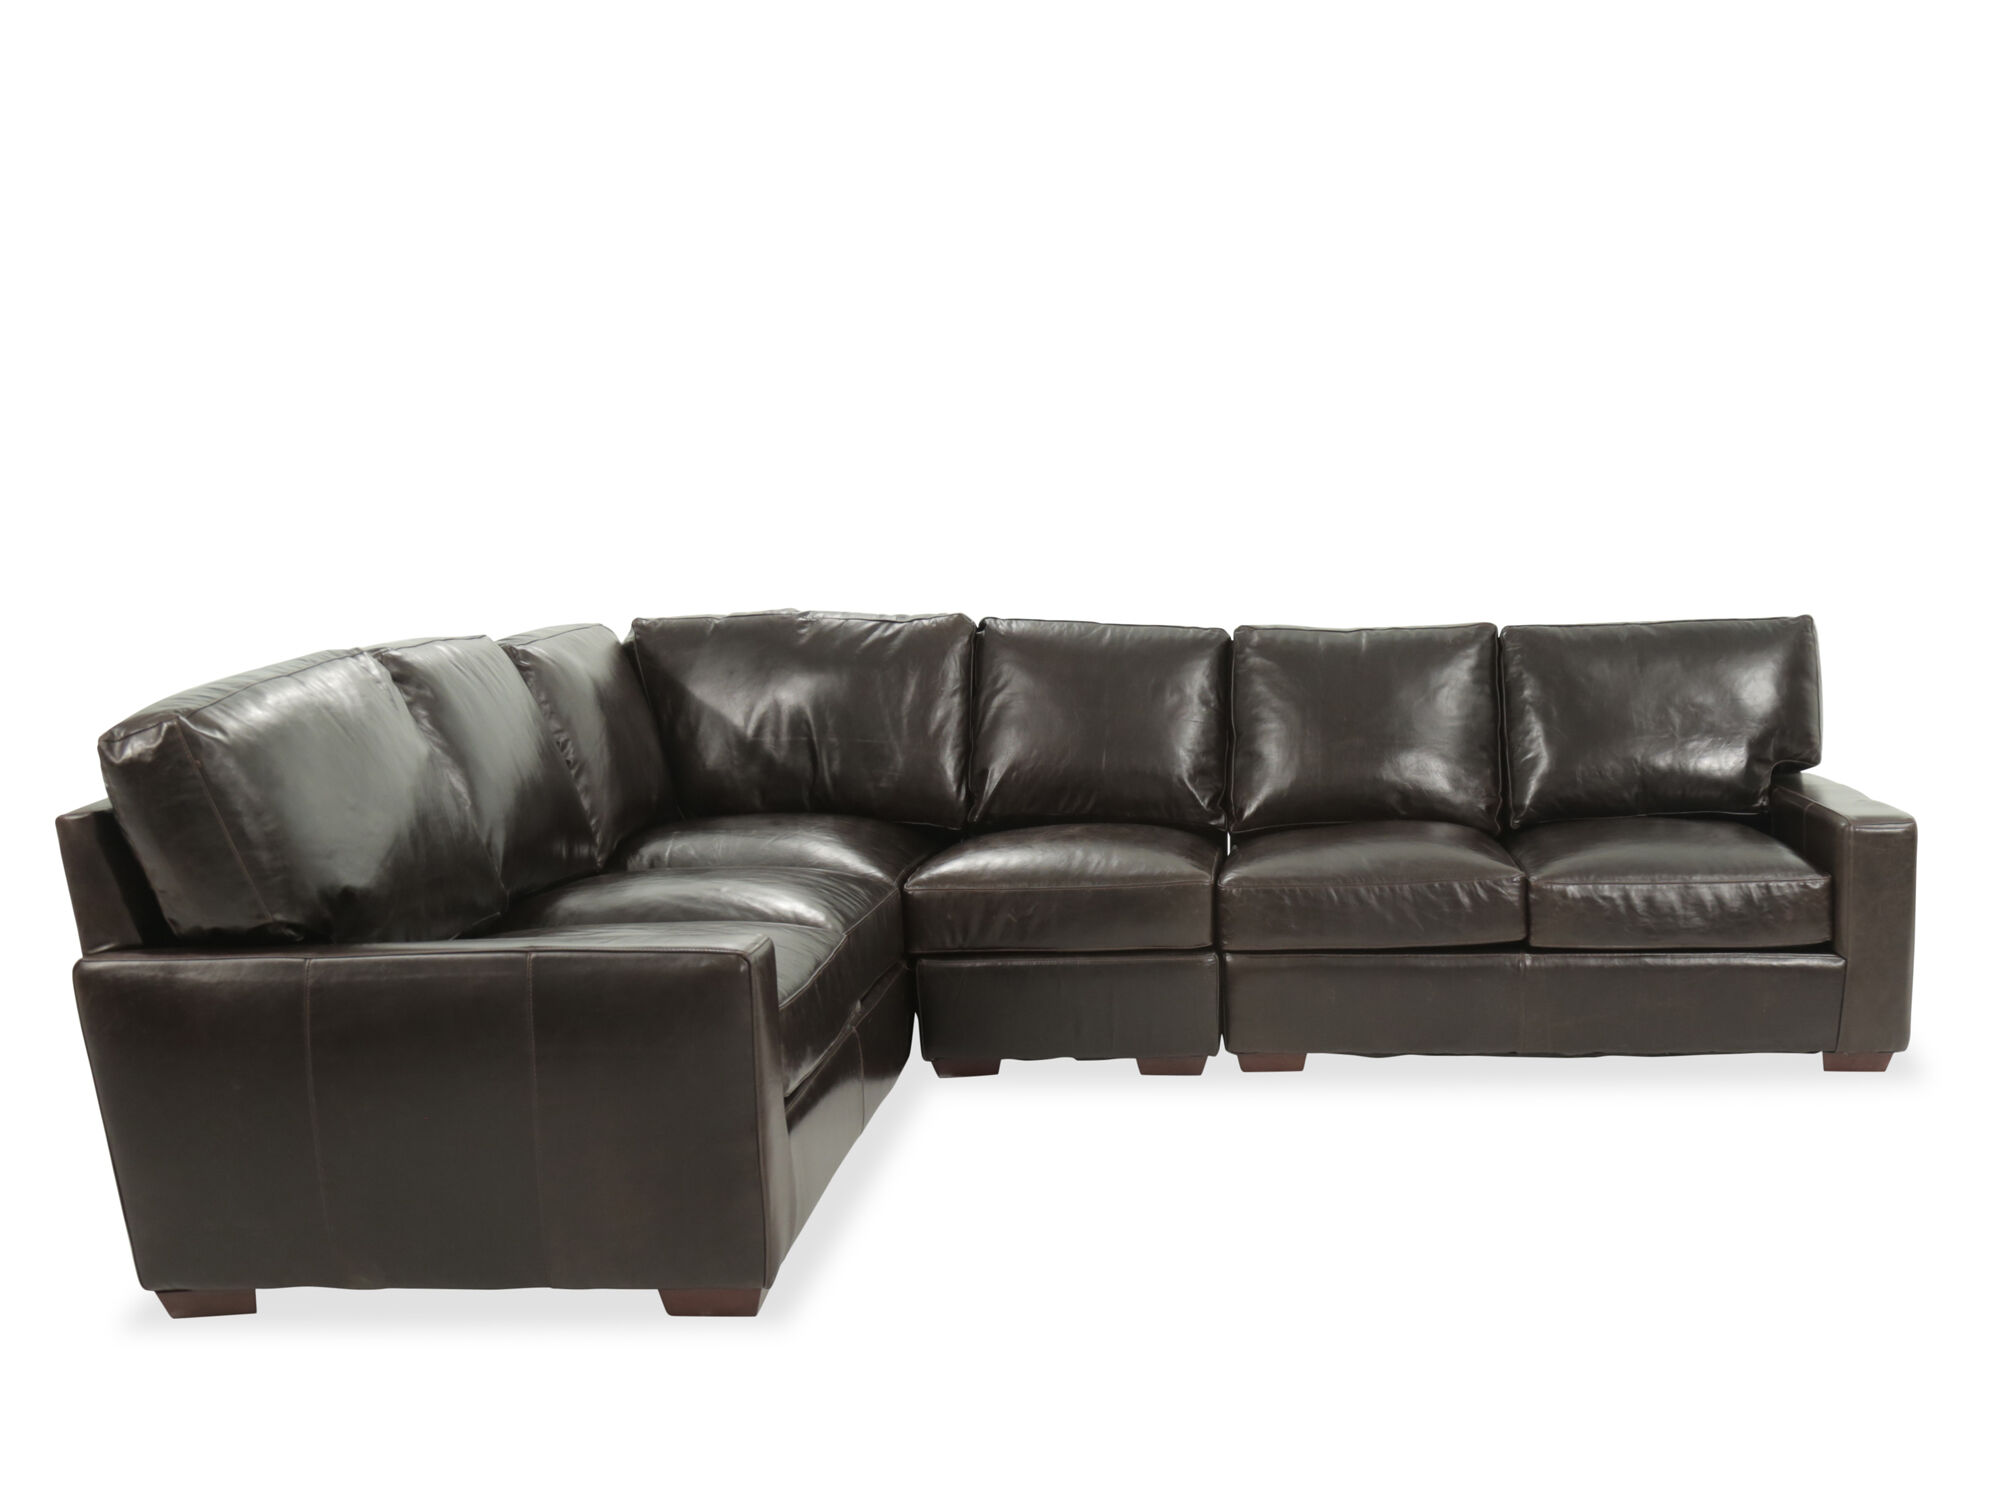 usa leather brompton tobacco fourpiece sectional